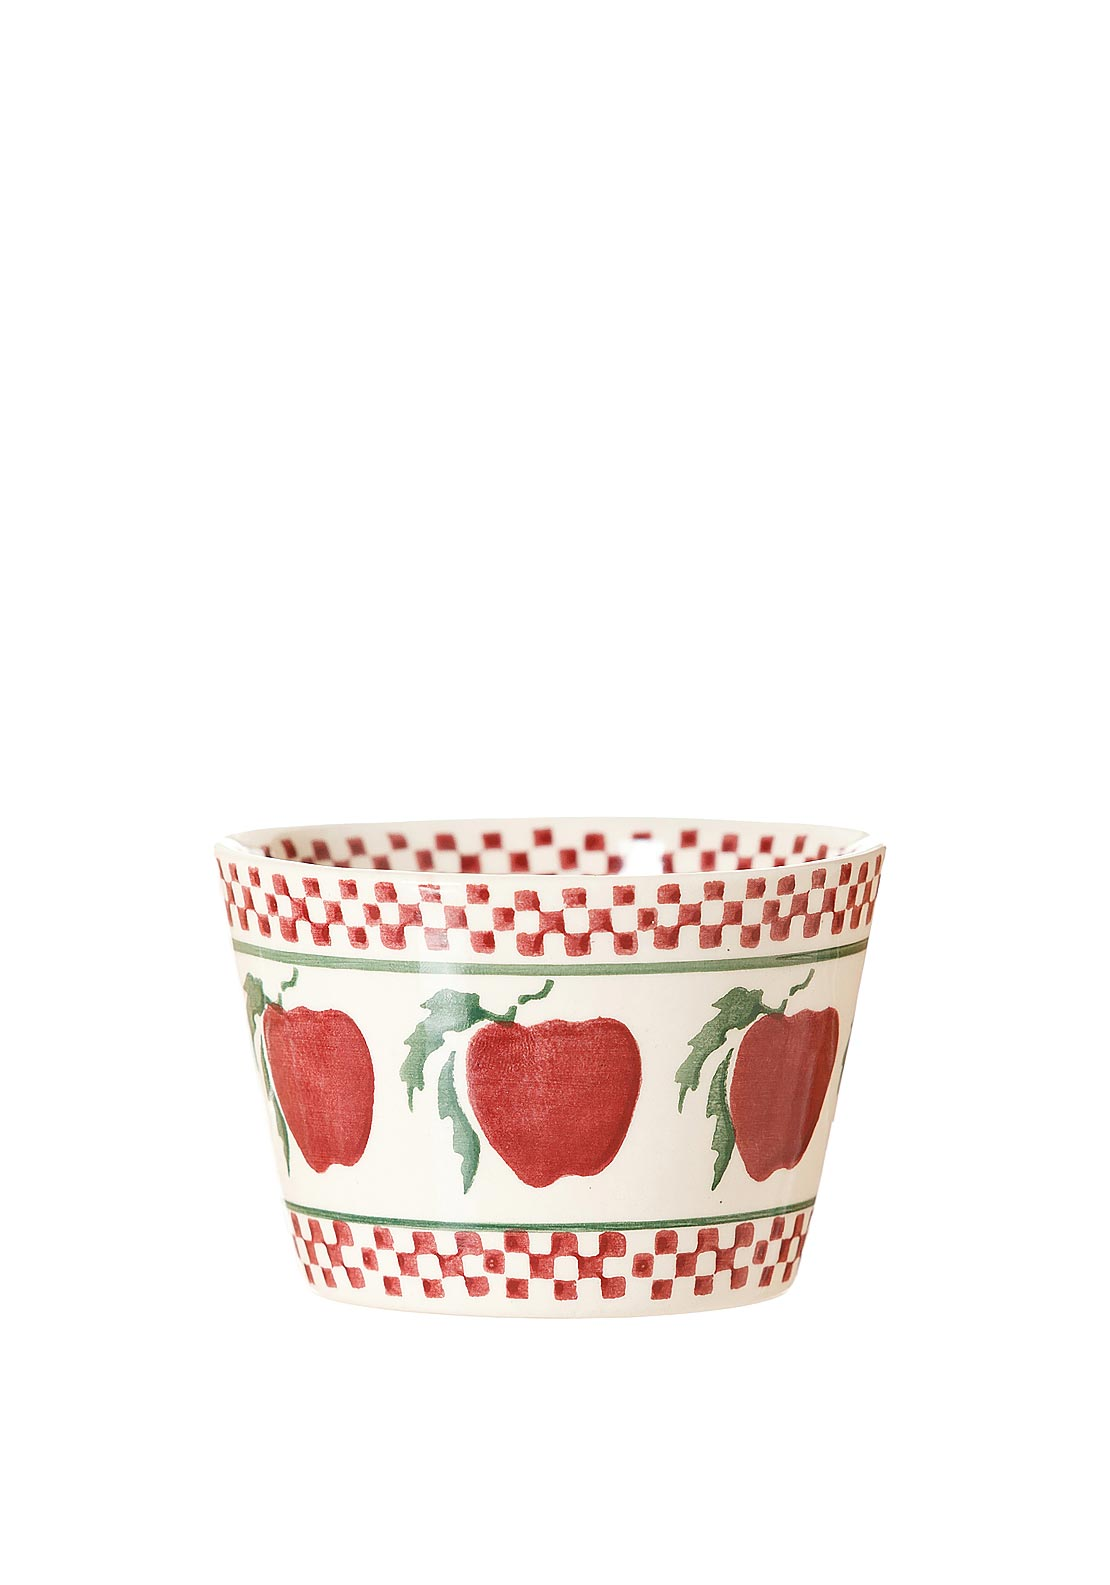 Nicholas Mosse Pottery Apple Custard Cups